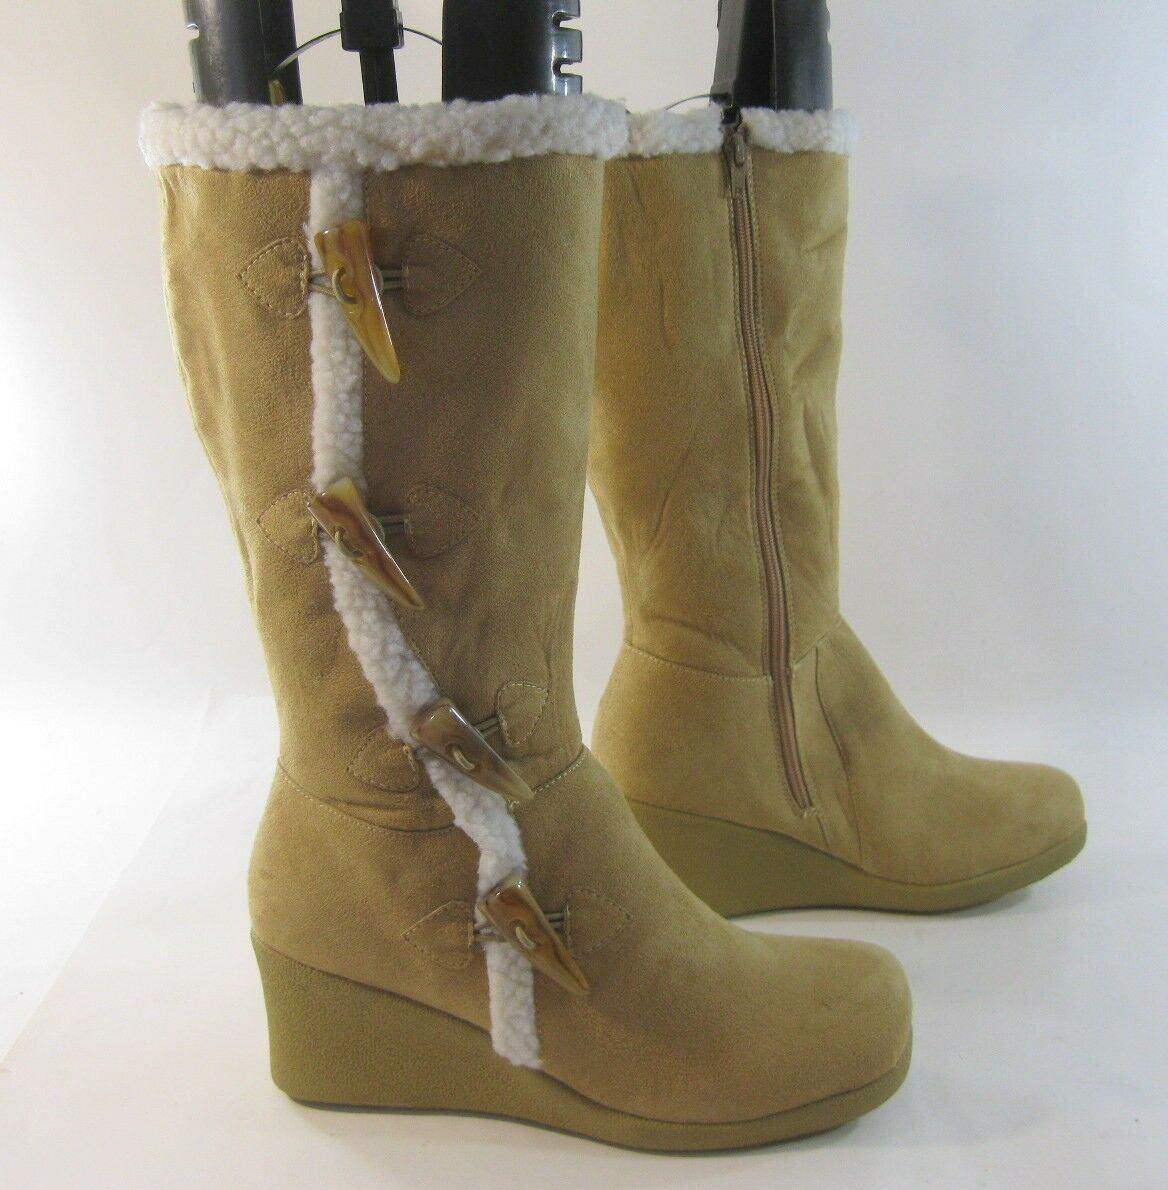 Camel color 3 Wedge Heel Round Toe Mid-Calf Boot Side Button Size 9